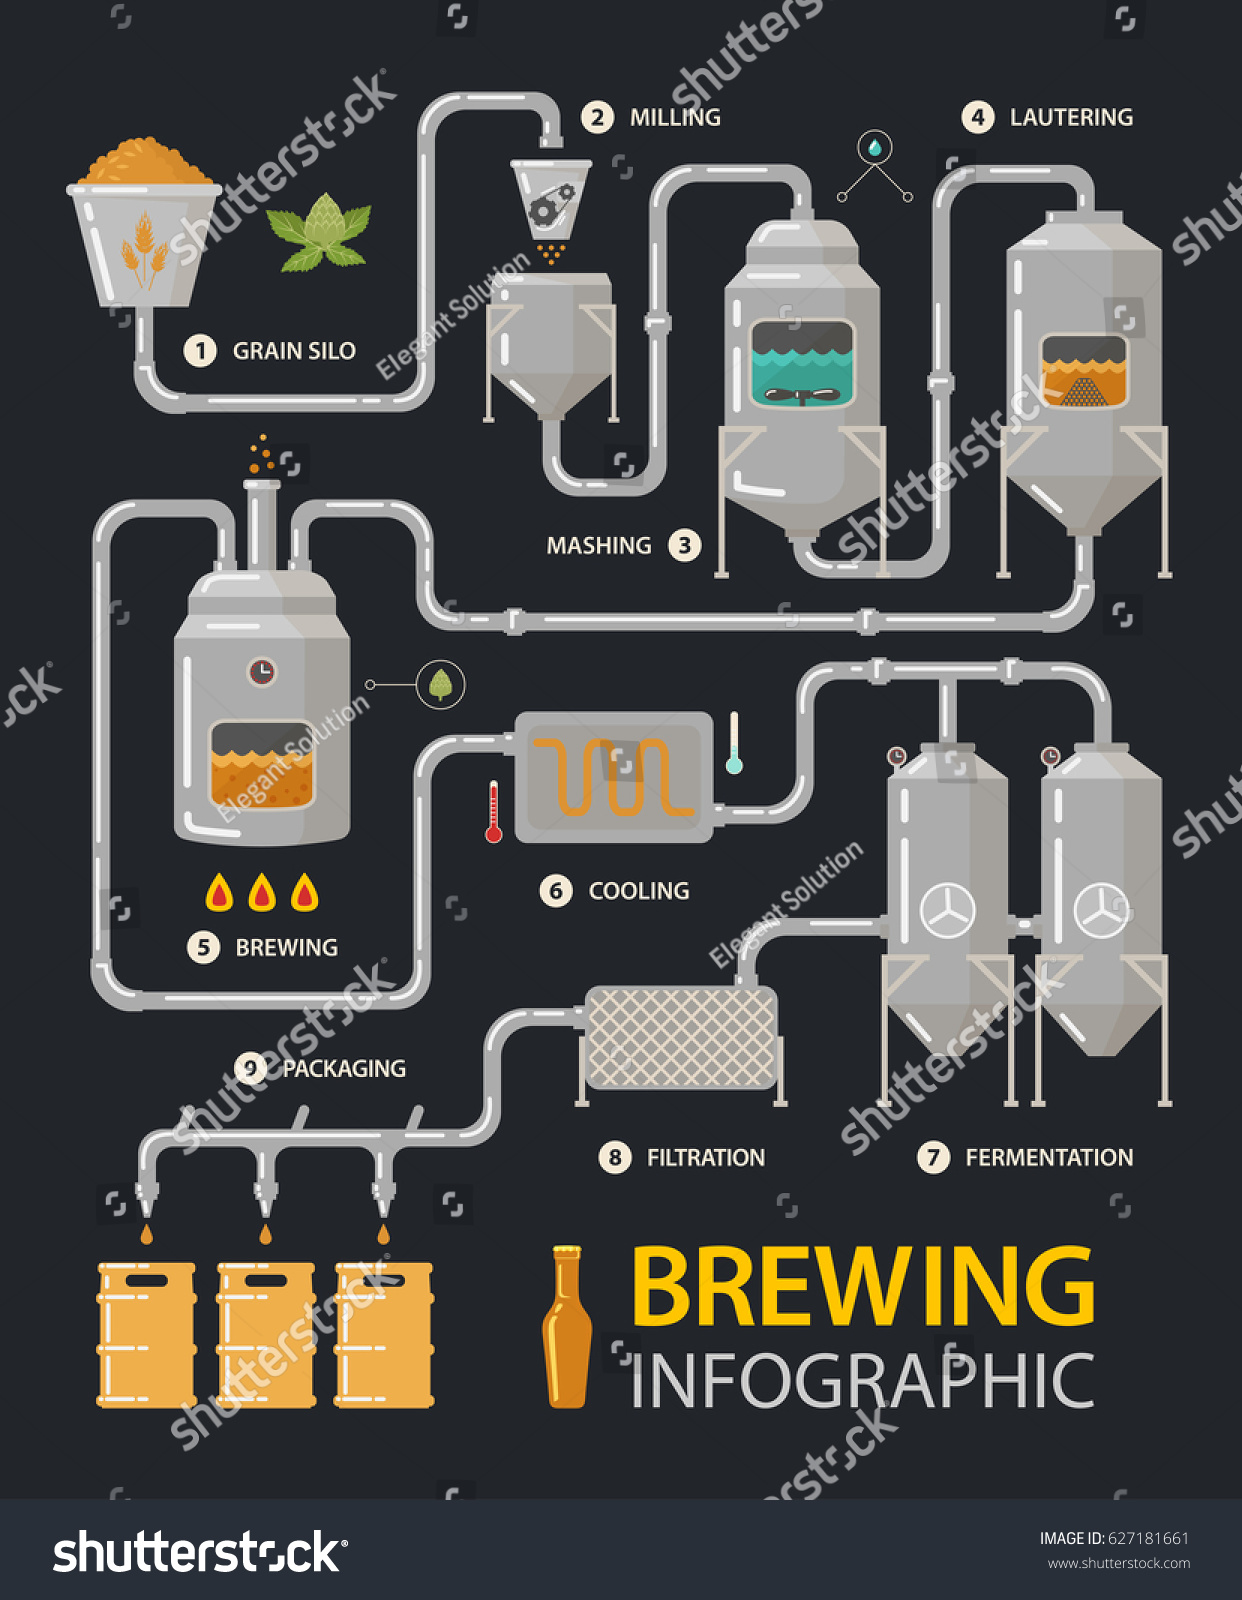 Brewing infographic beer production process tanks stock vector brewing infographic of beer production process with tanks and filters milling and lautering brew pooptronica